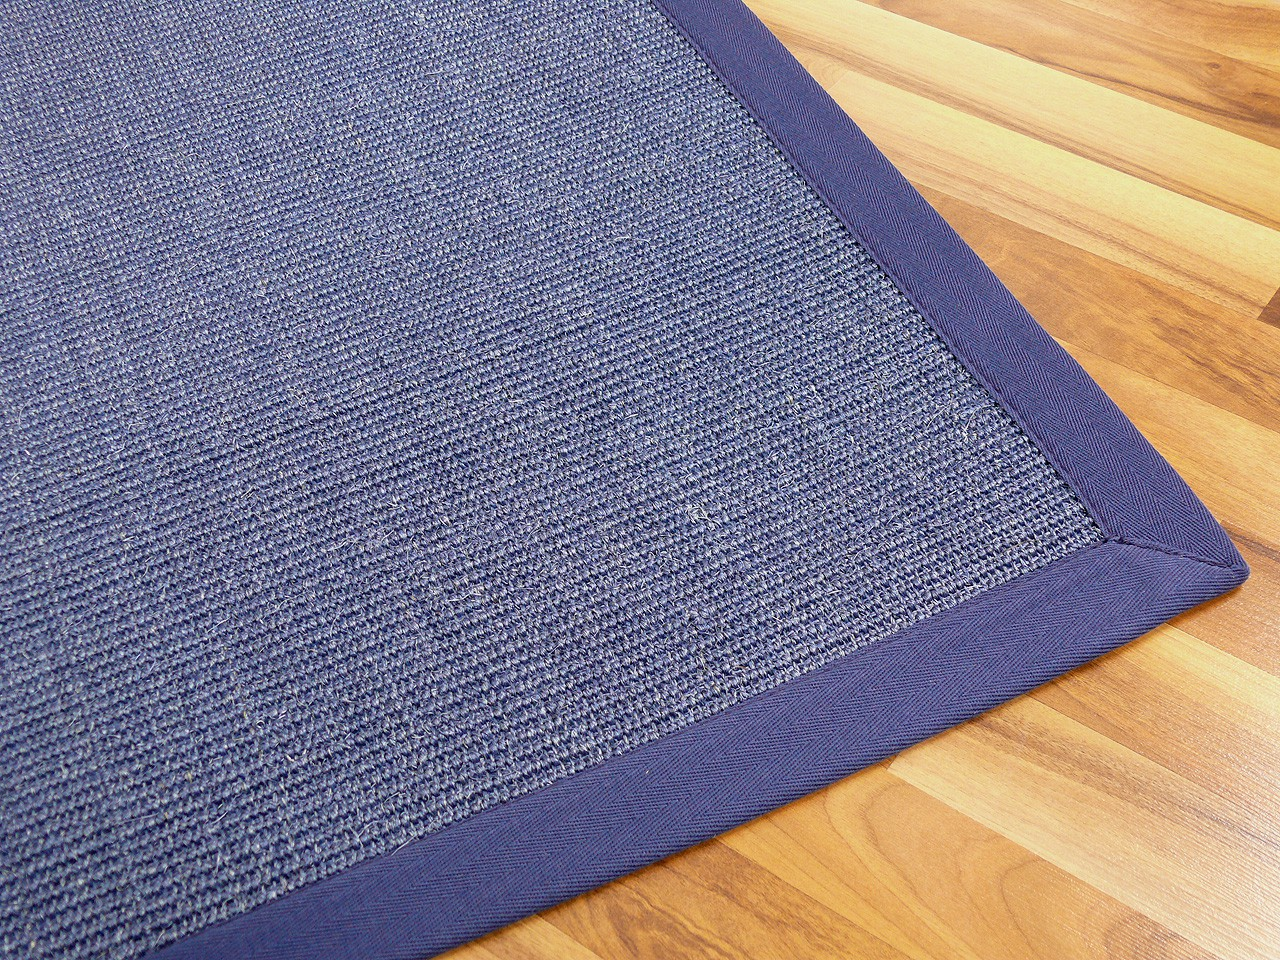 sisal astra natur teppich blau bord re blau teppiche sisal und naturteppiche sisal teppiche mit. Black Bedroom Furniture Sets. Home Design Ideas